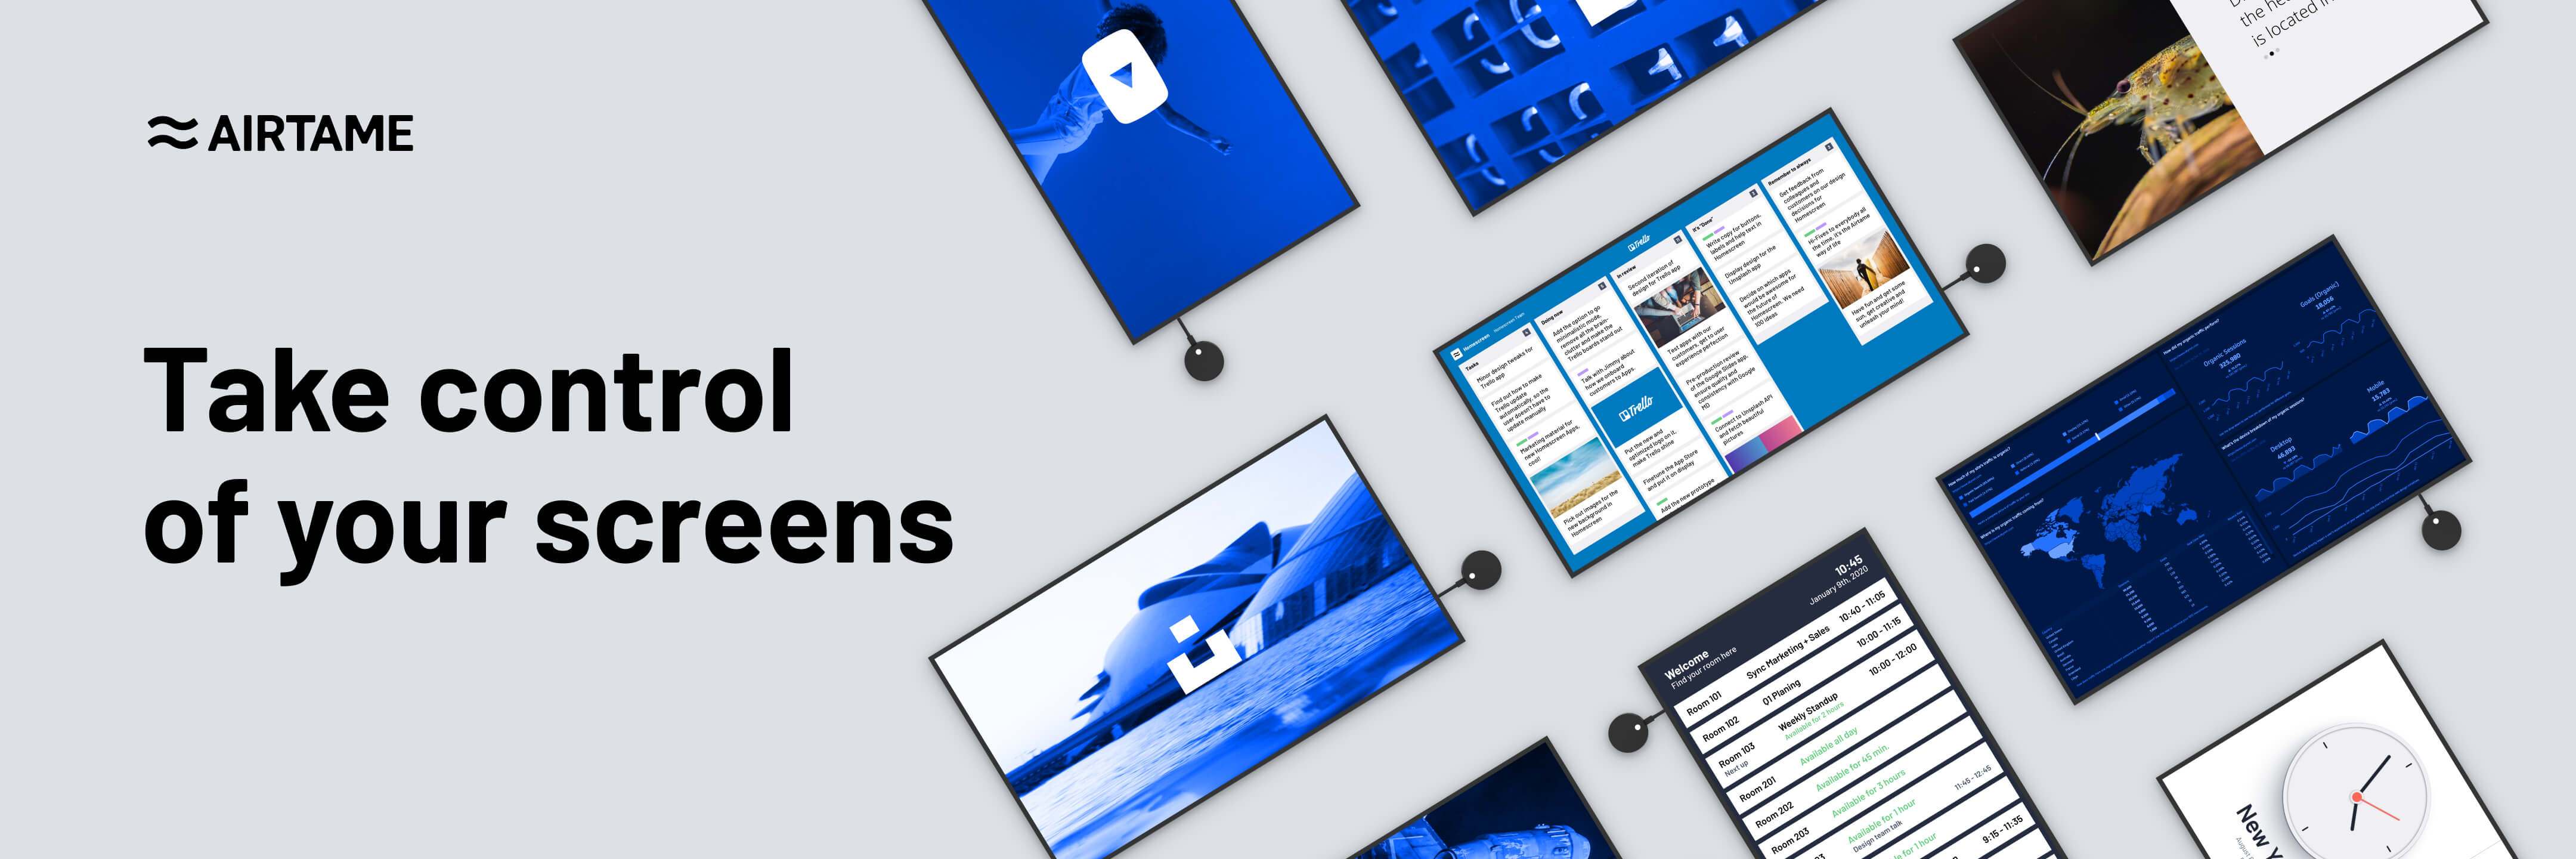 Airtame Application banner